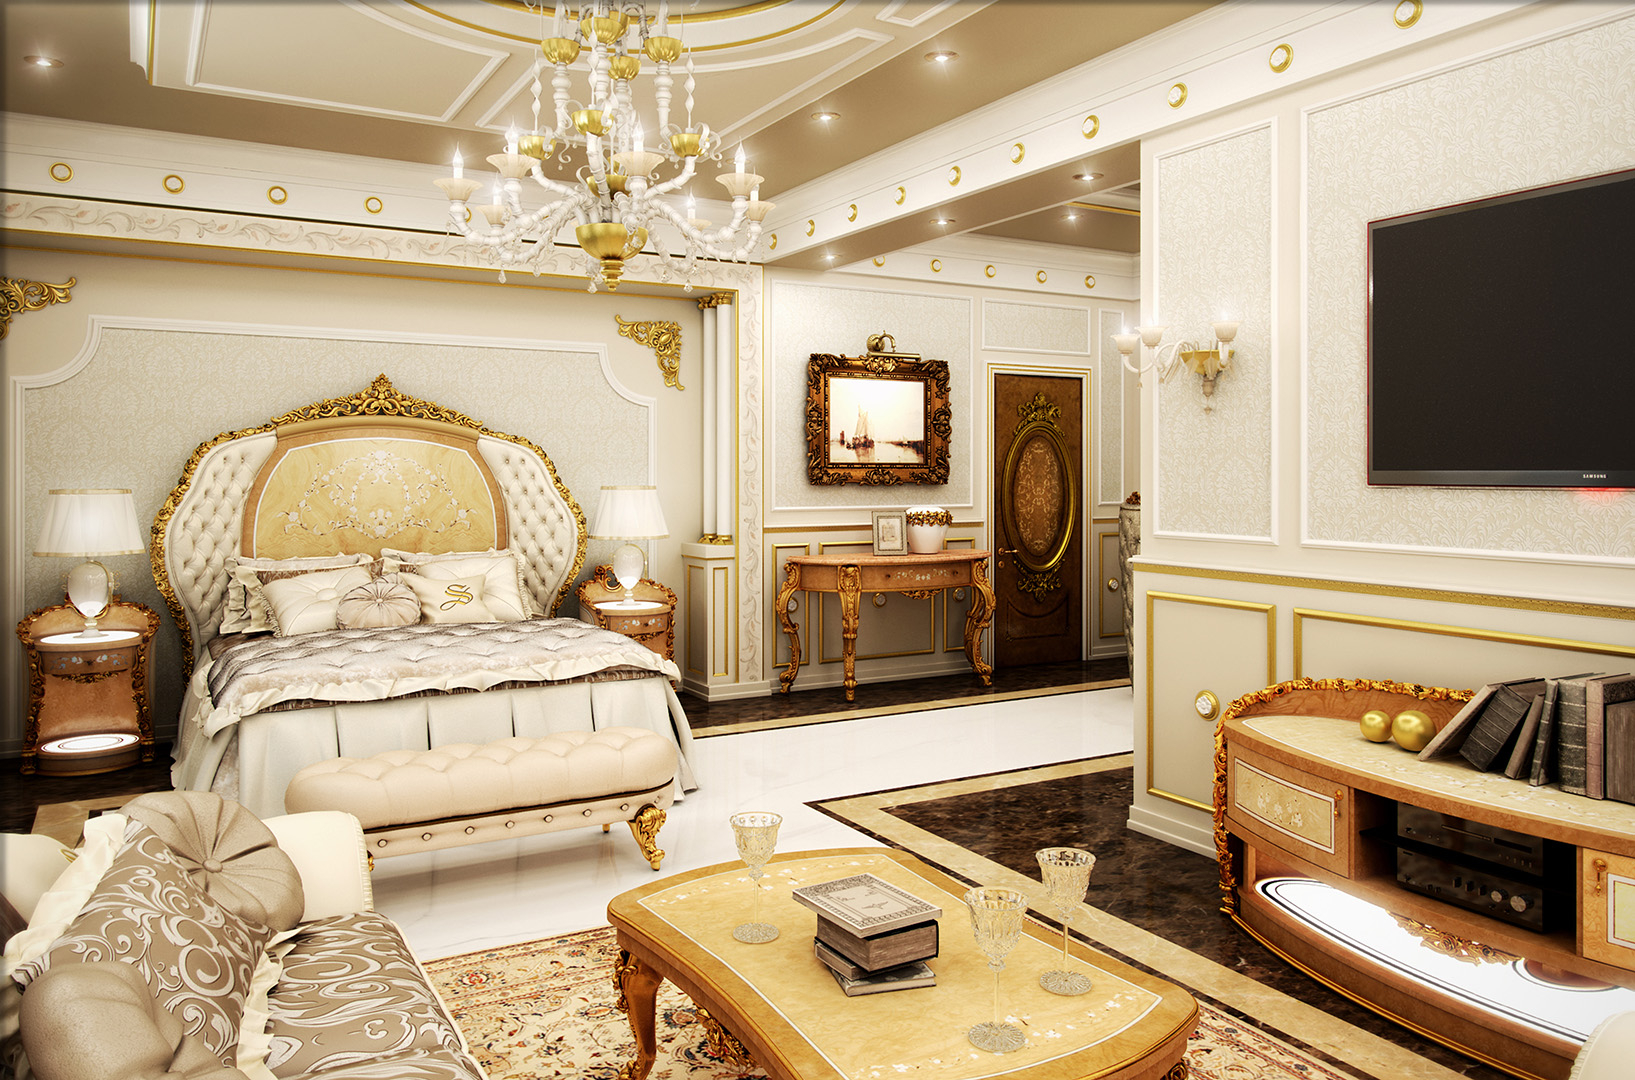 13 Girl bedroom RENDER1 06 07 2015